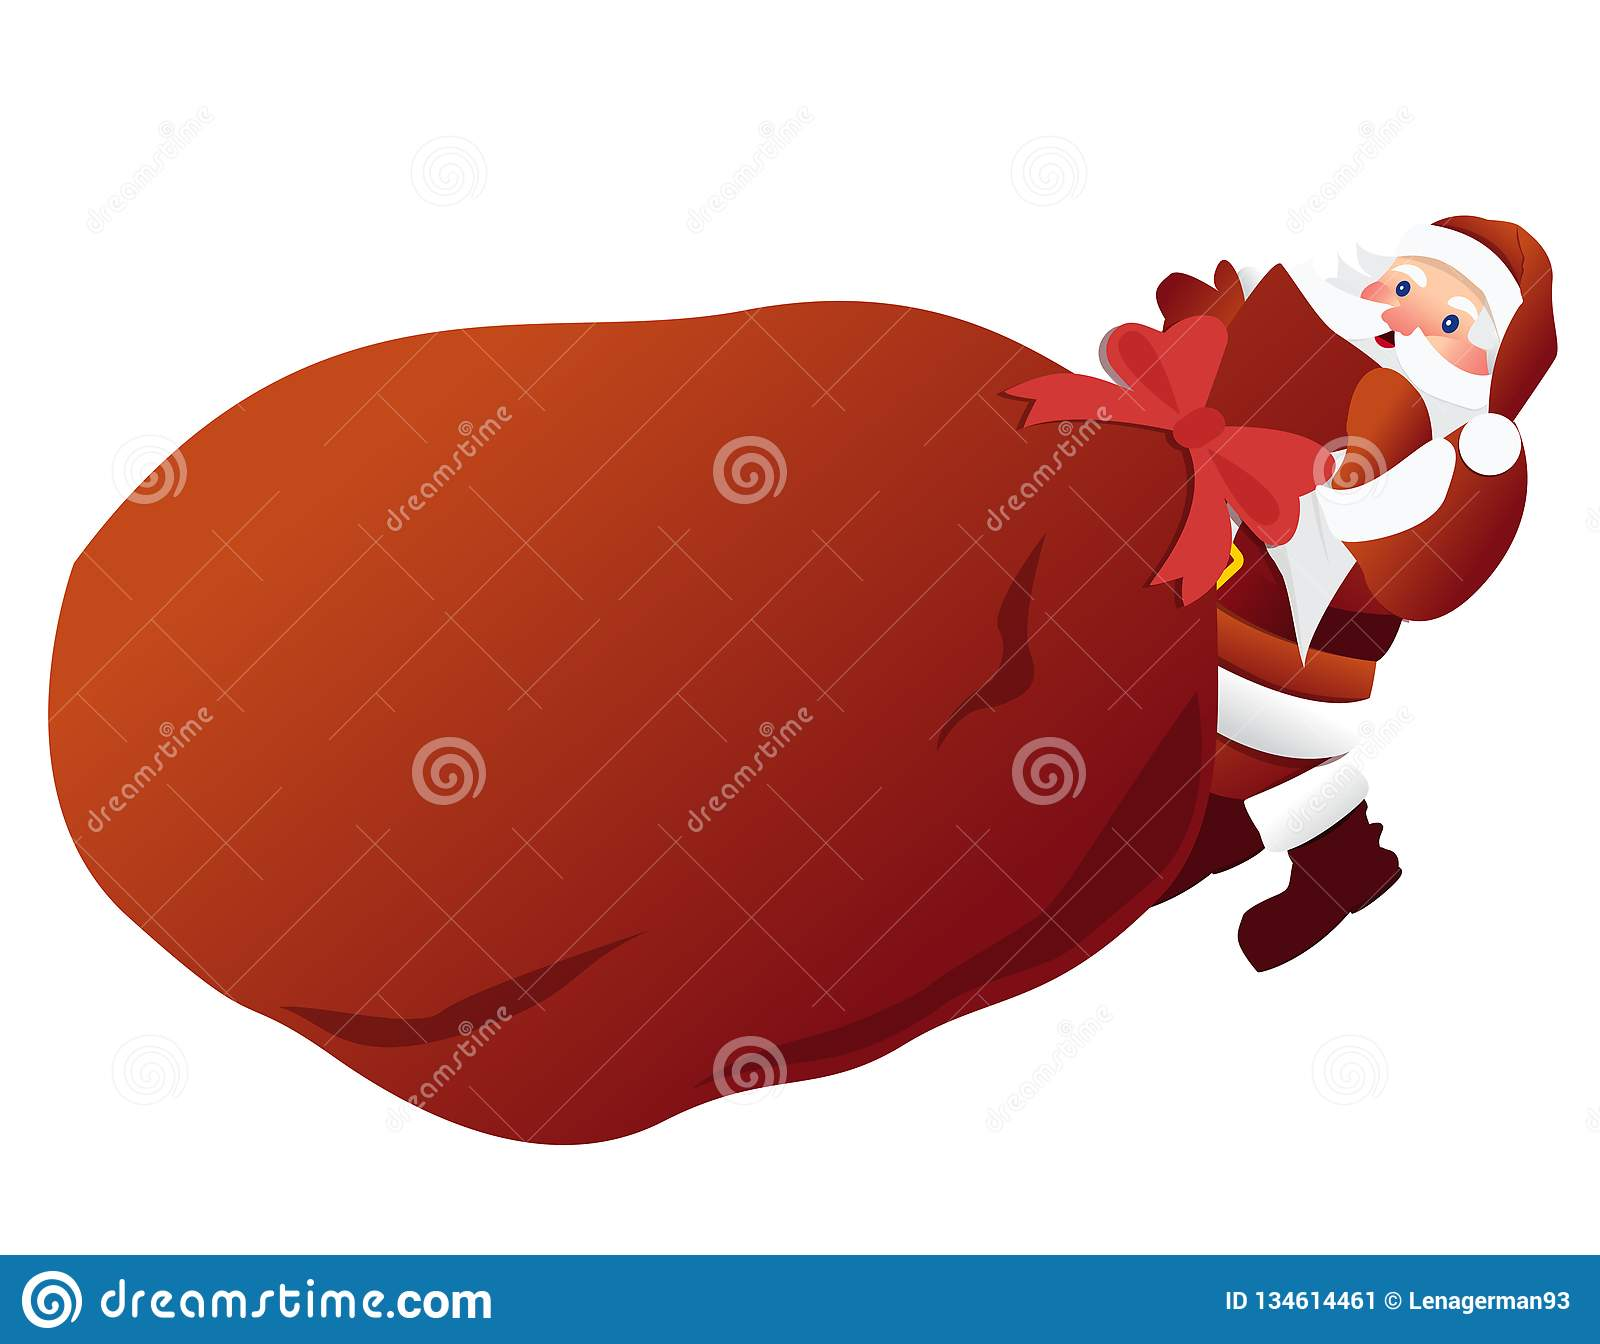 Santa Claus pulls a heavy big red bag with gifts for kids. Vector illustration